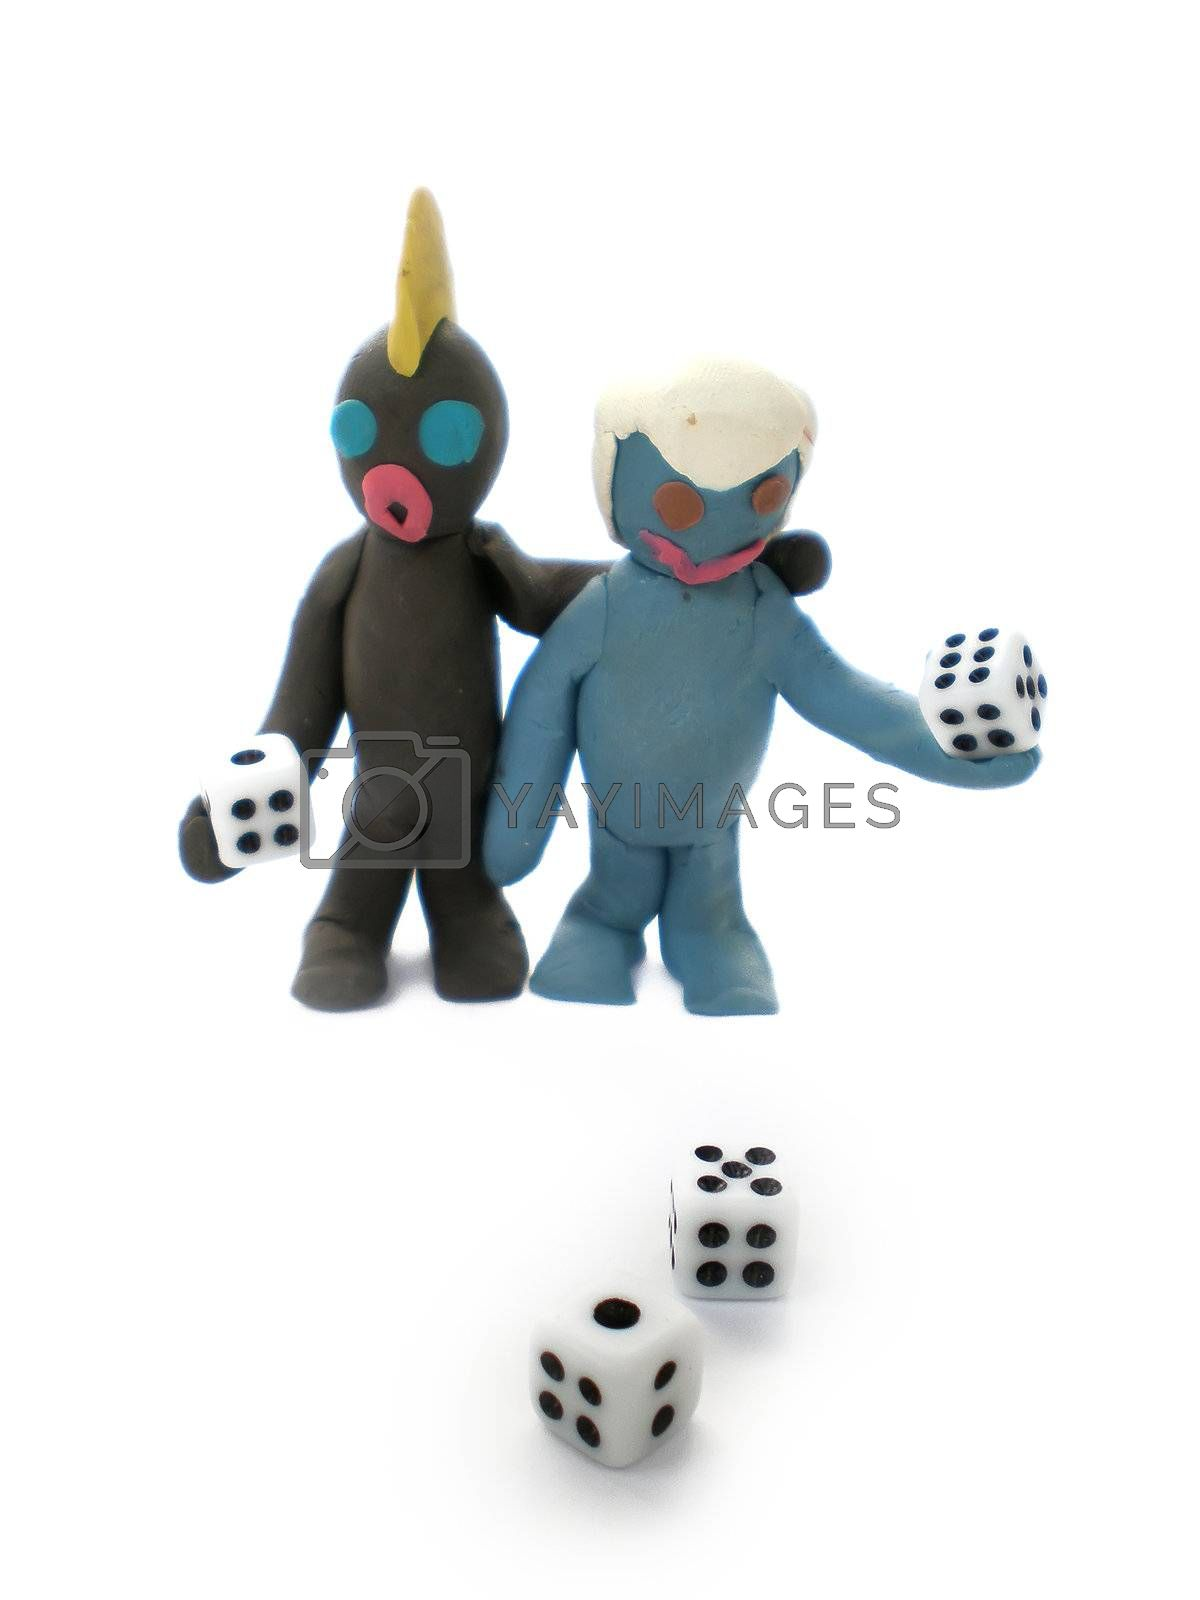 Royalty free image of plasticine people figures playing with dice by Dessie_bg